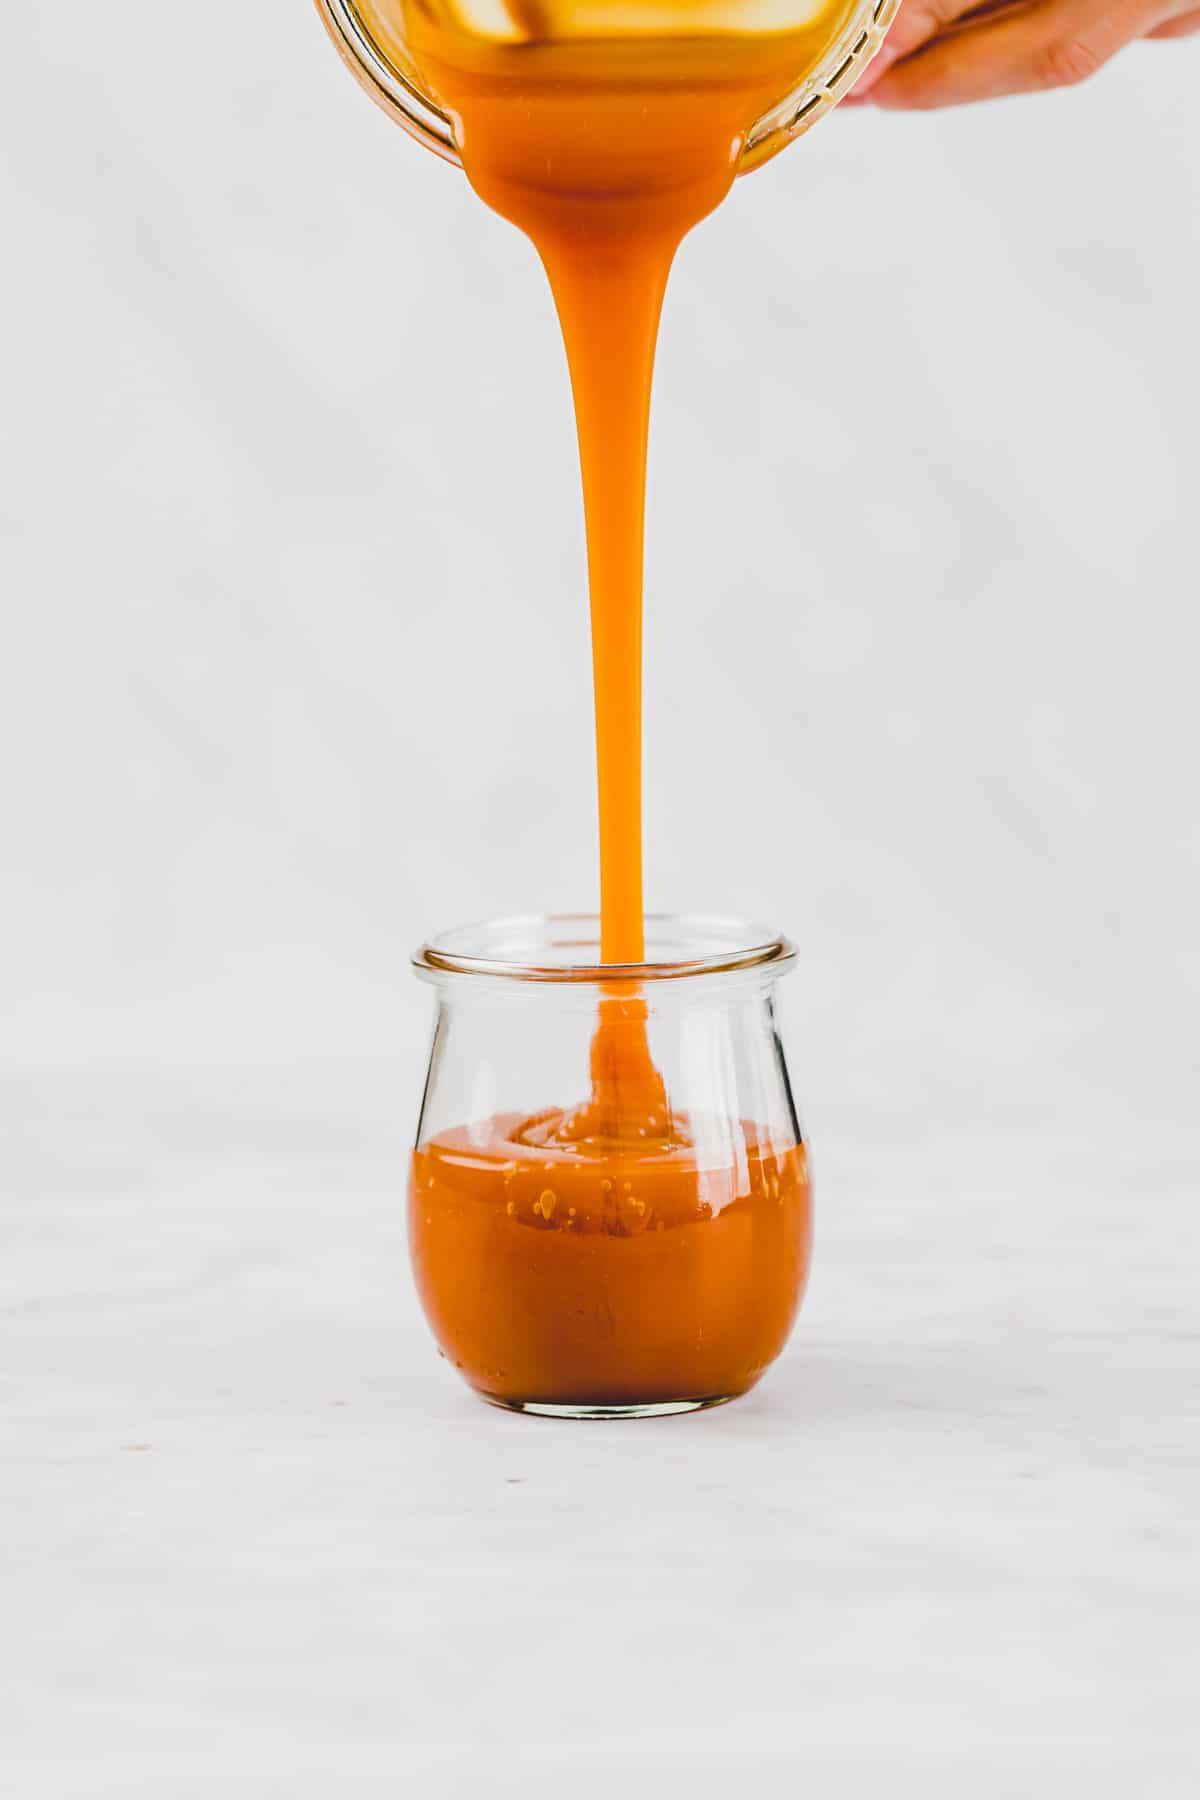 pouring dairy-free caramel sauce into a tulip jar